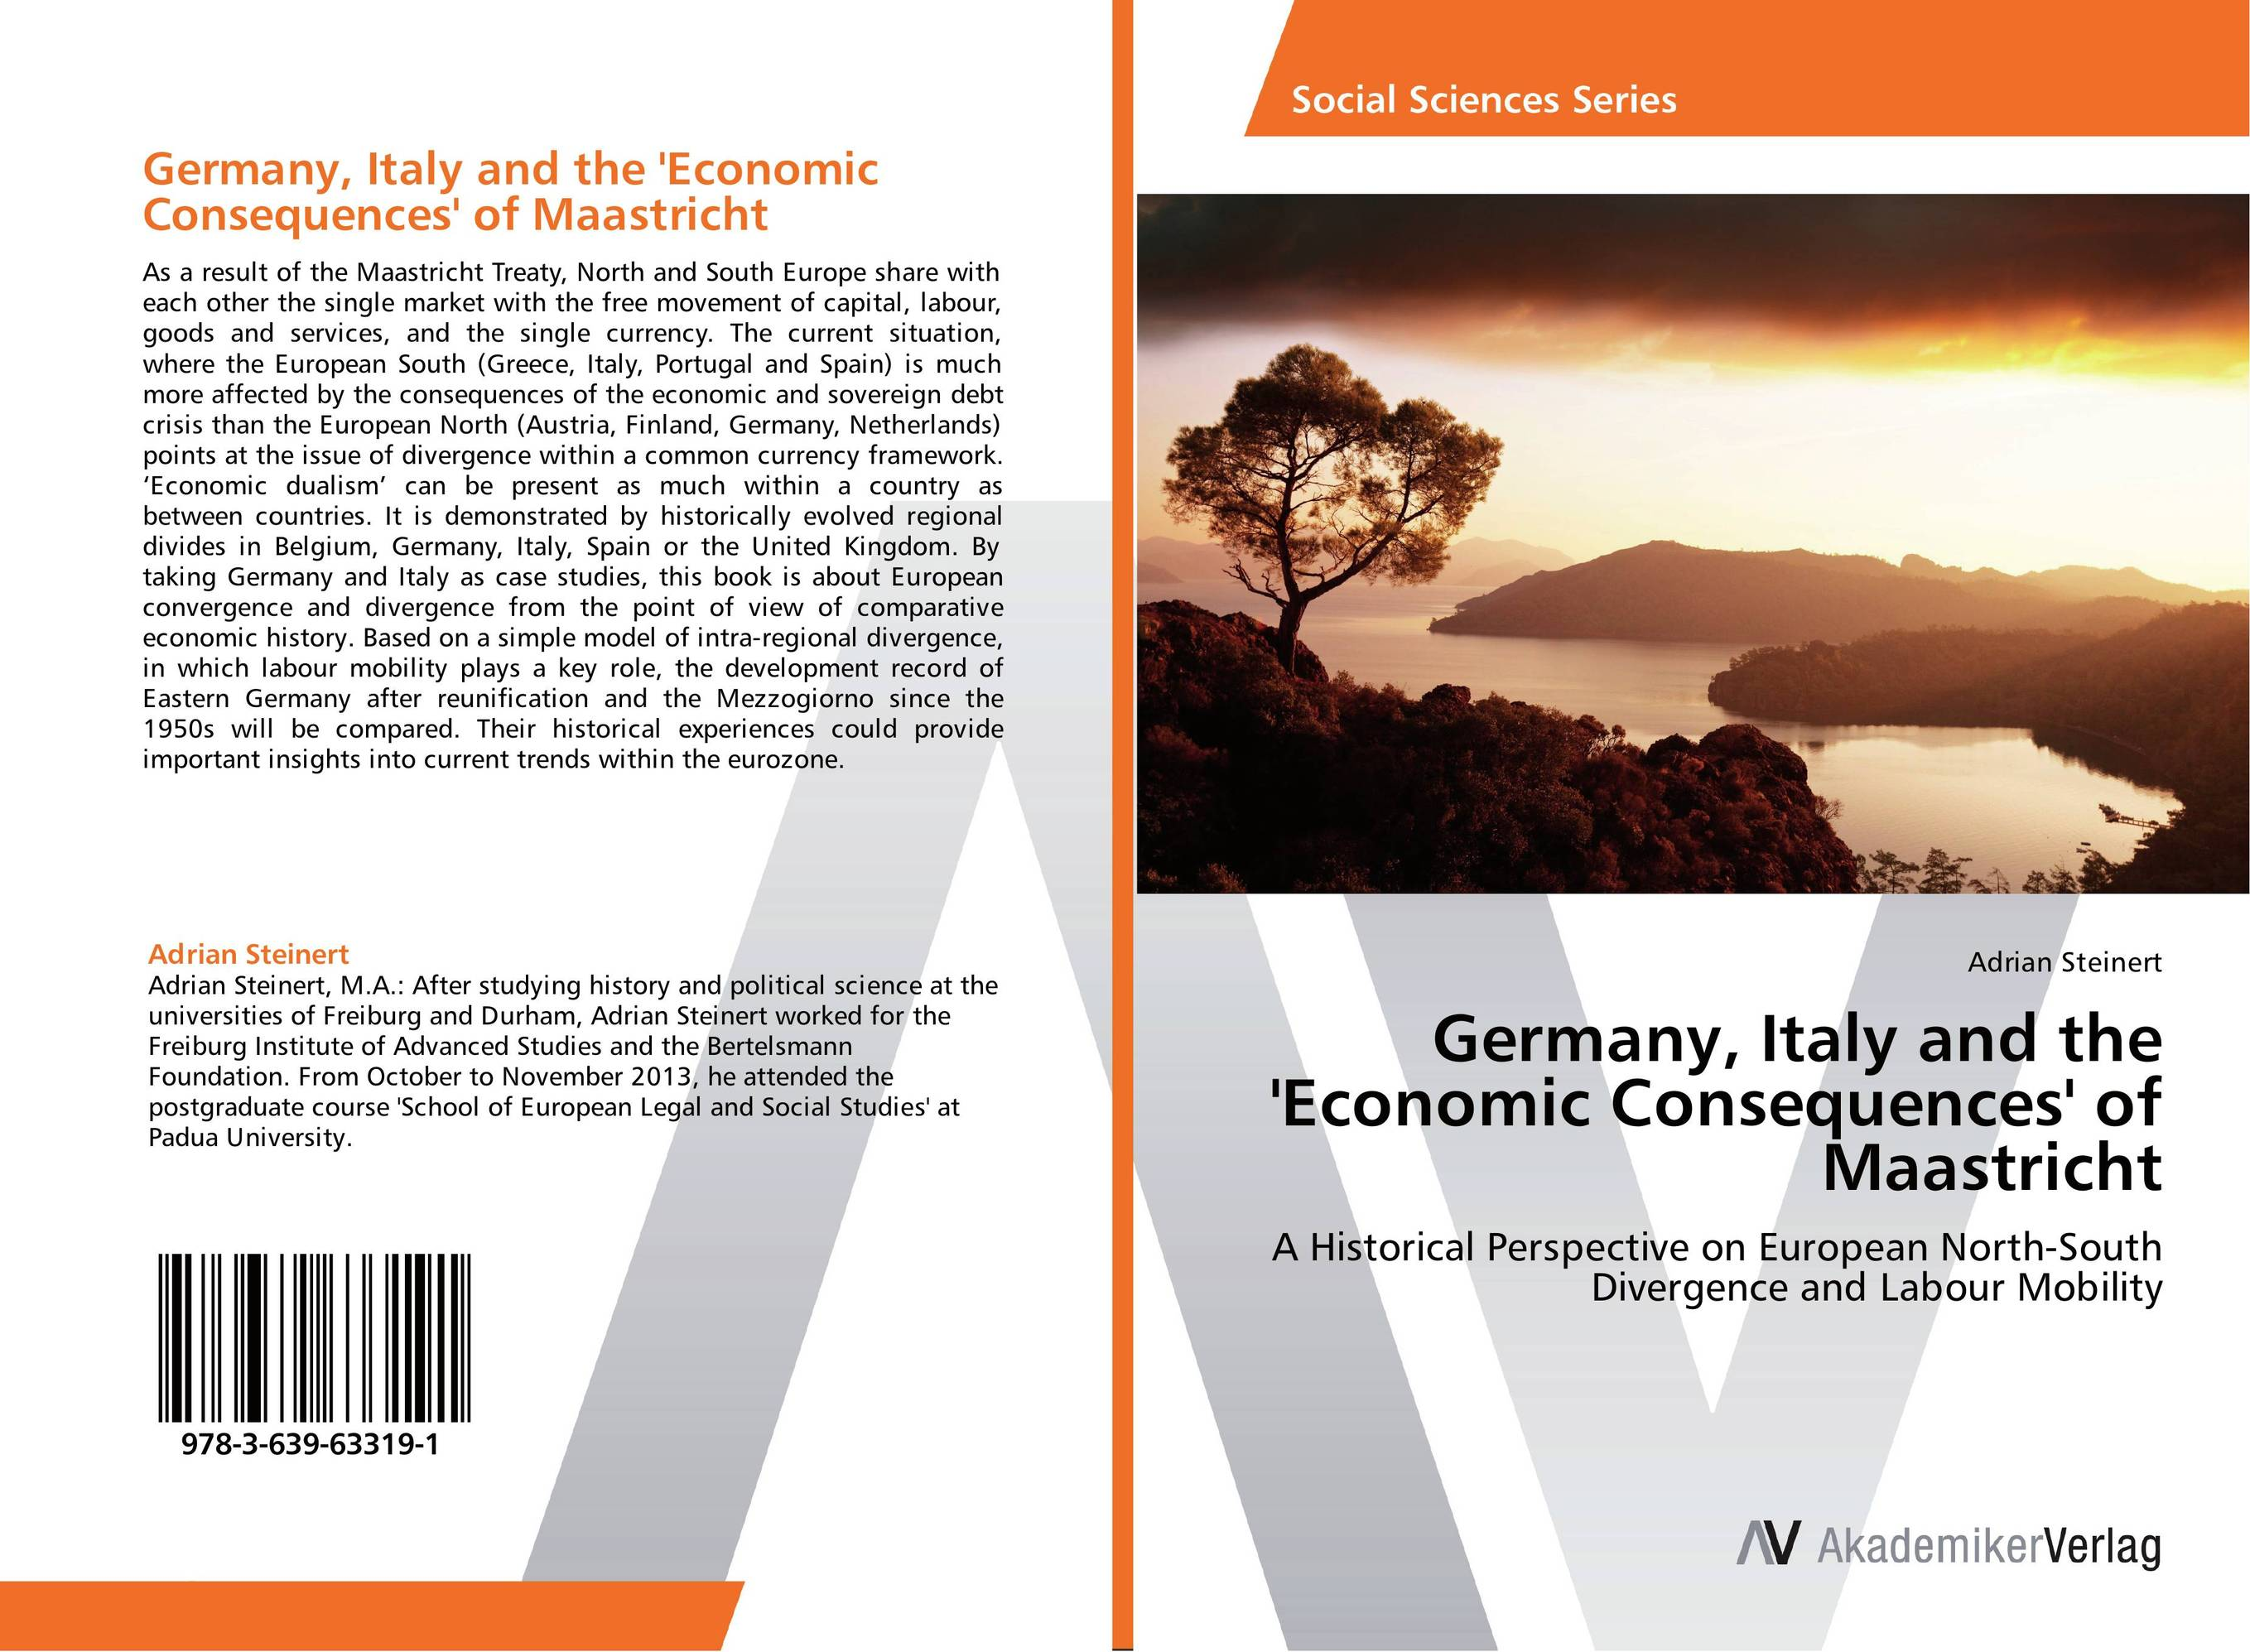 Germany, Italy and the 'Economic Consequences' of Maastricht n giusti diffuse entrepreneurship and the very heart of made in italy for fashion and luxury goods